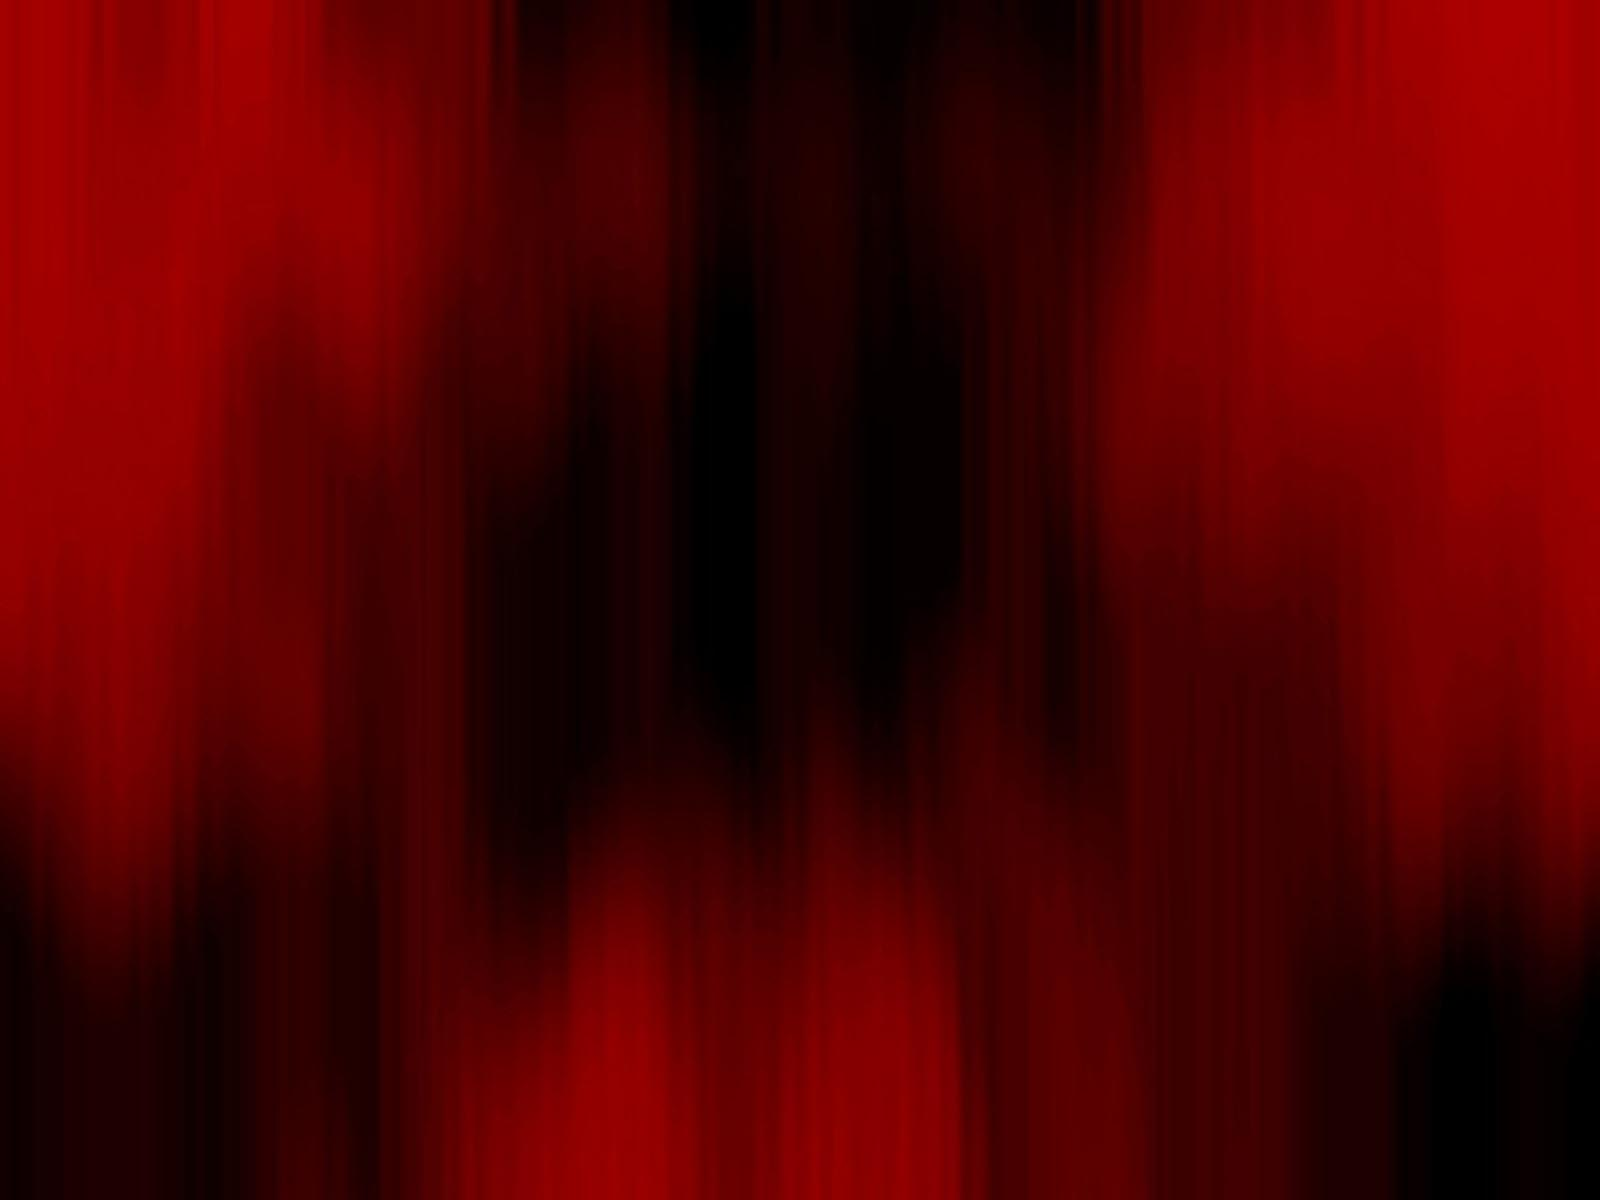 black background hd download Black And Red Background 1600x1200